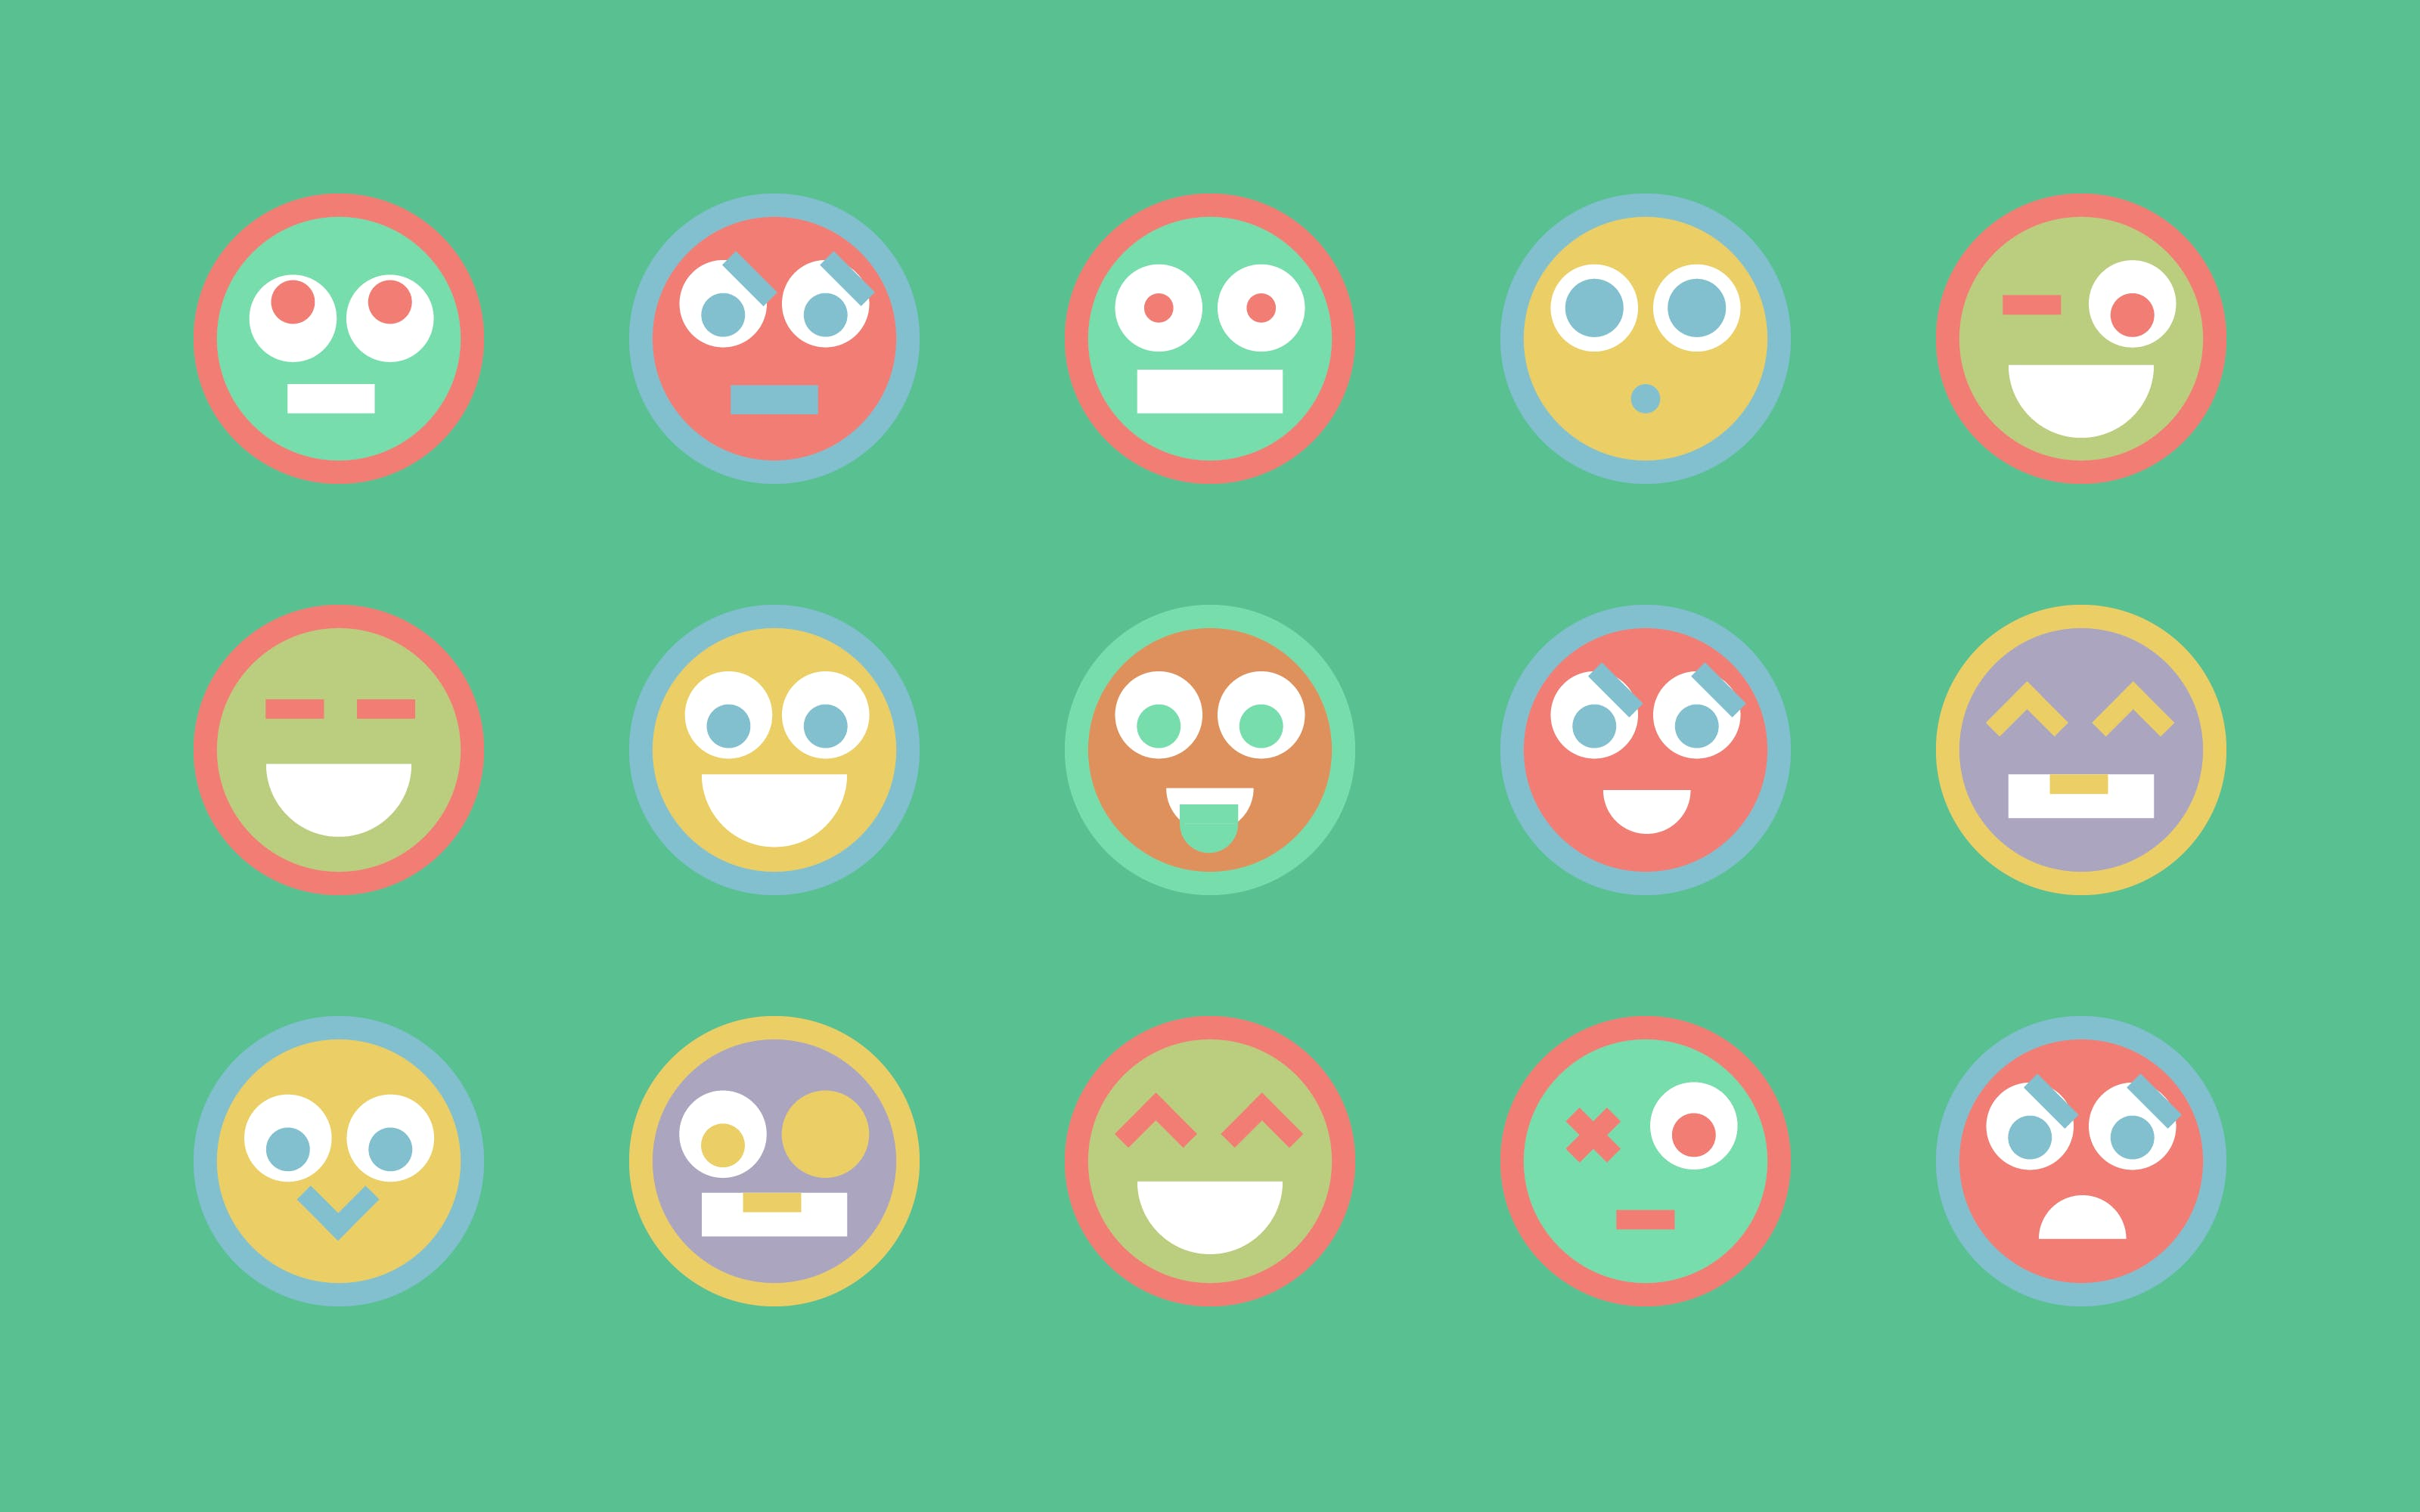 Superdot Studio Emoticon-Based Brand Language for Bildungslandschaften Basel, Switzerland, 2015